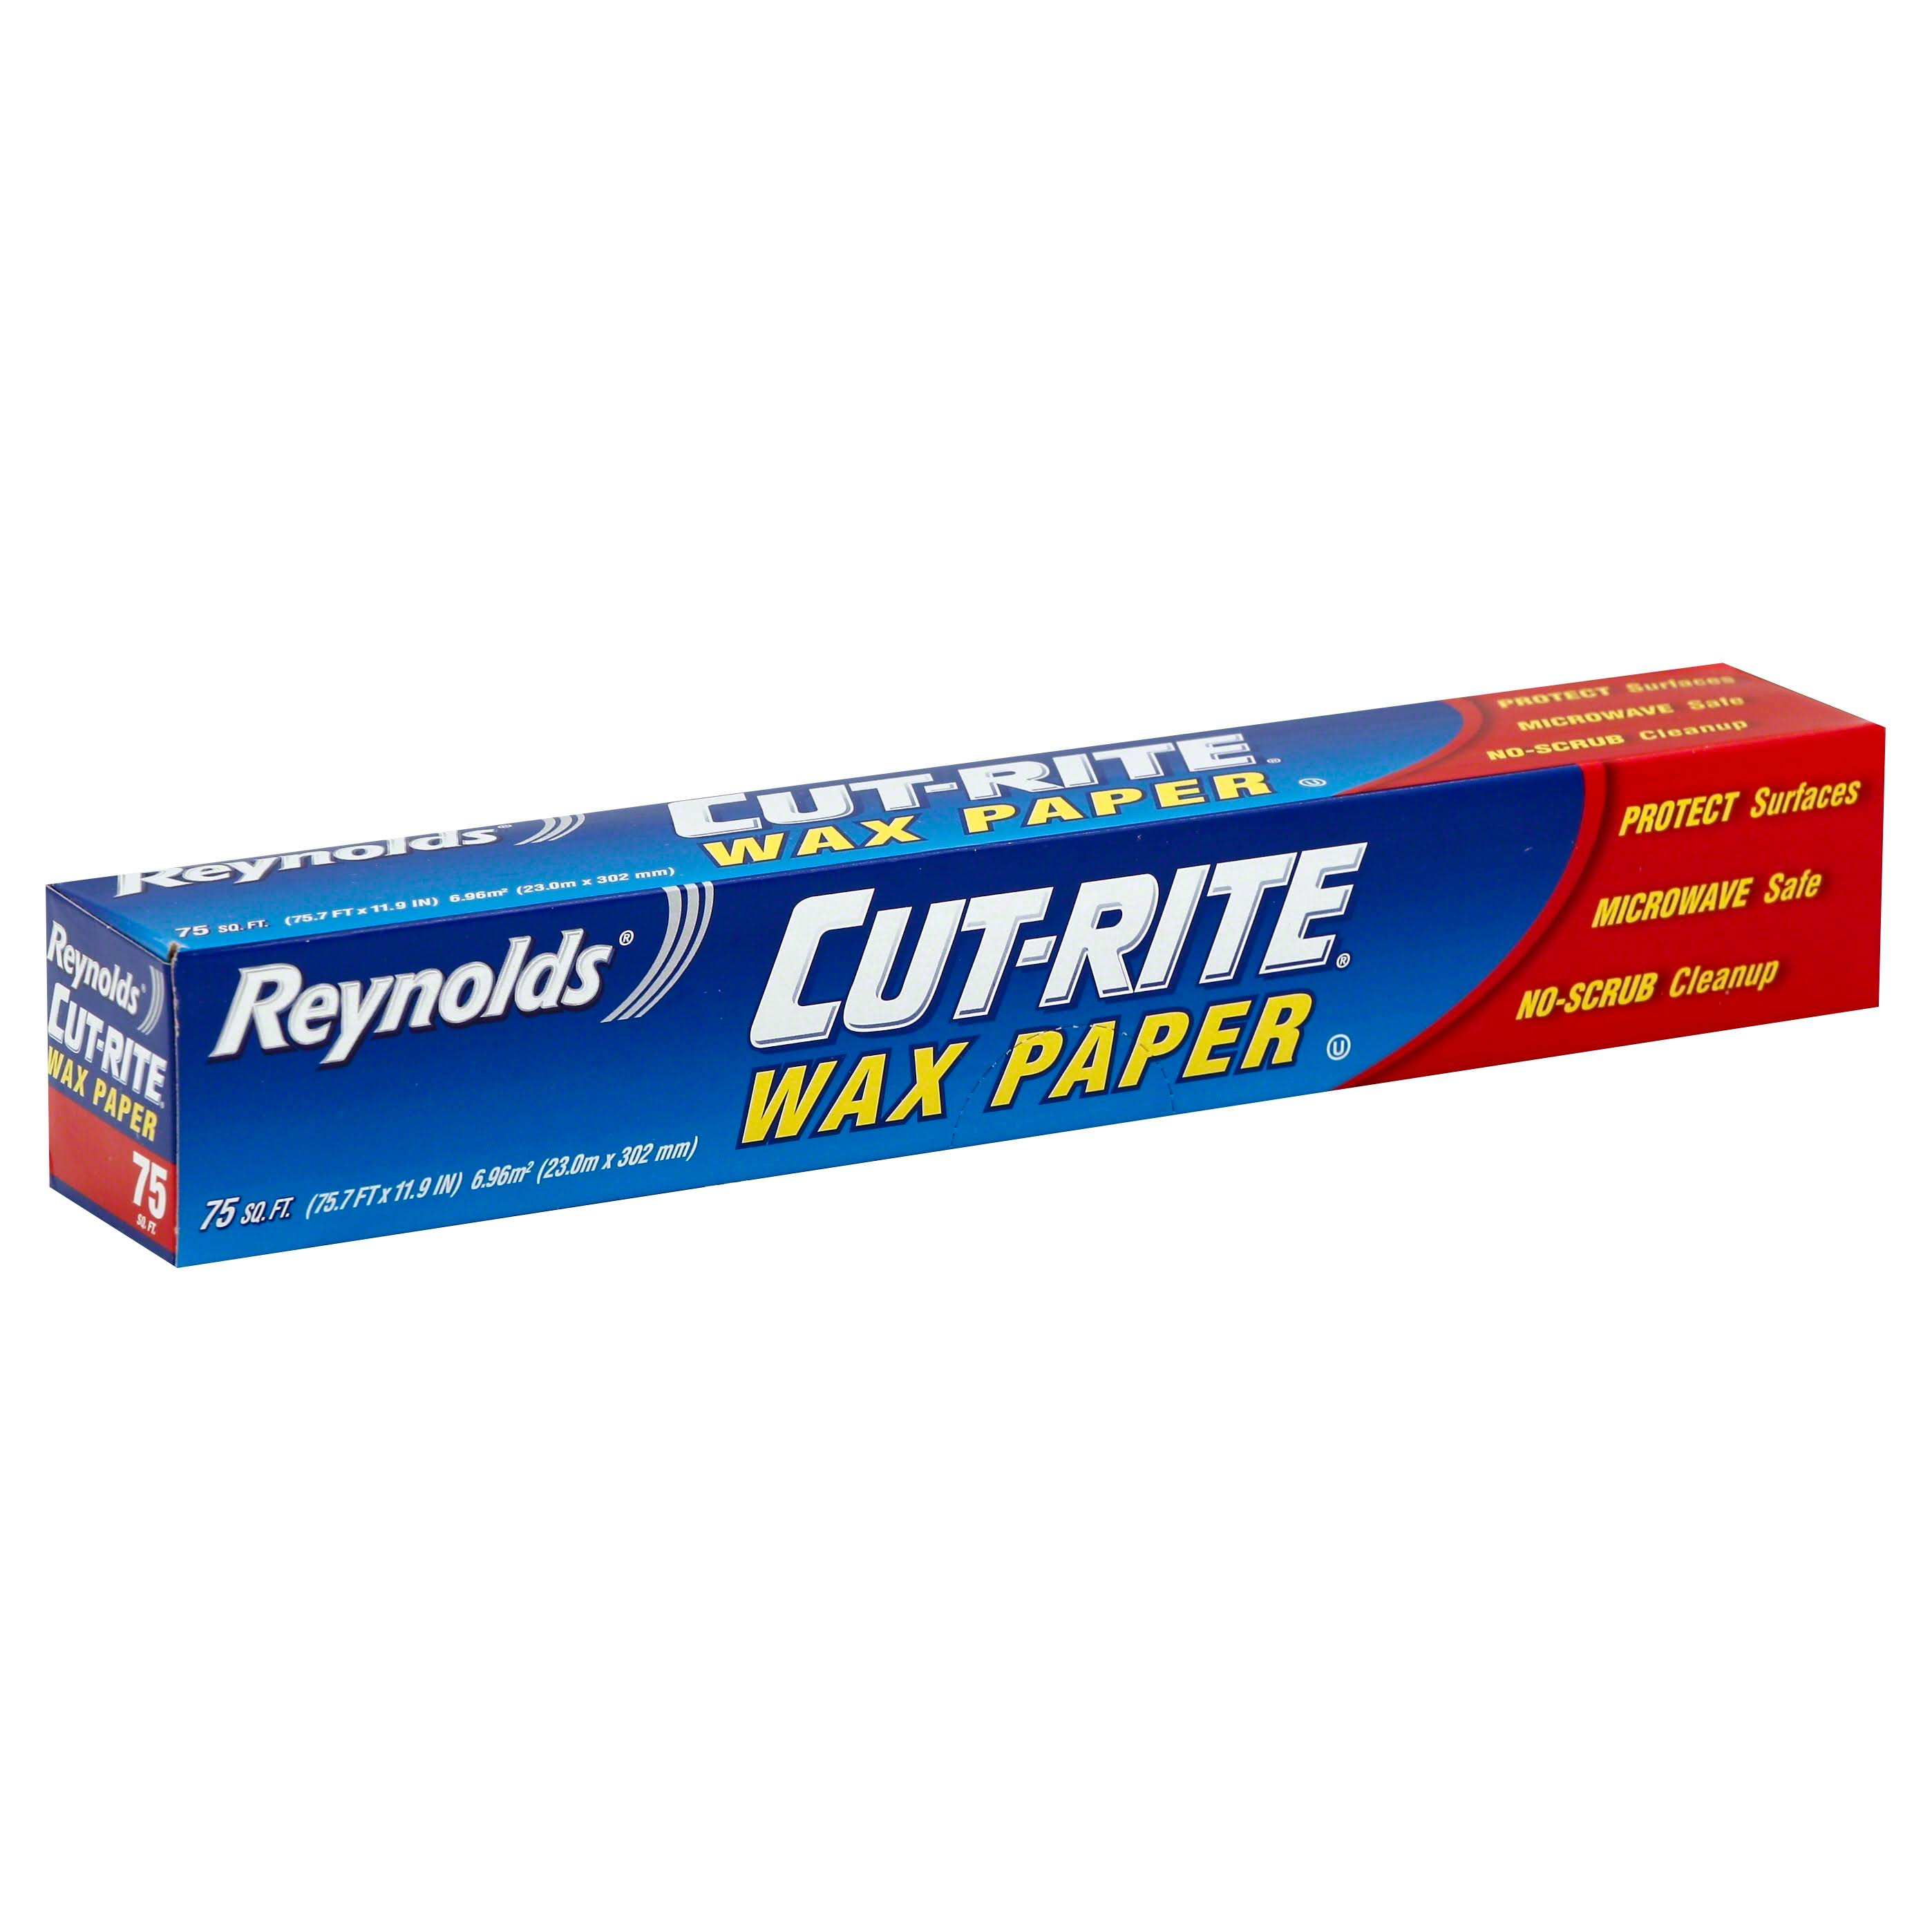 Reynolds Cut-Rite Wax Paper - 75sf